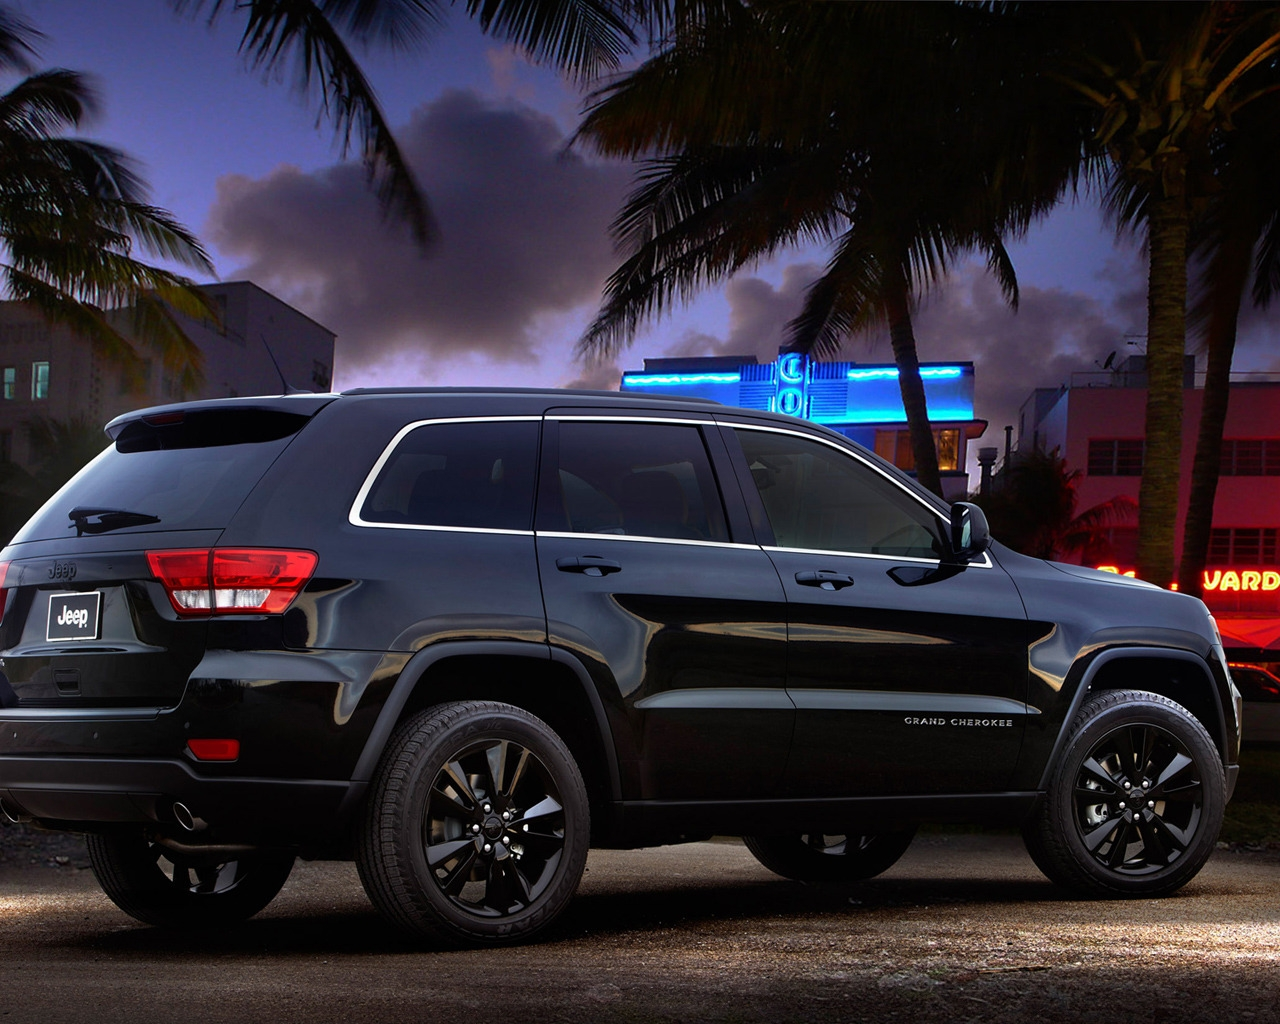 Jeep Grand Cherokee Rear Concept for 1280 x 1024 resolution